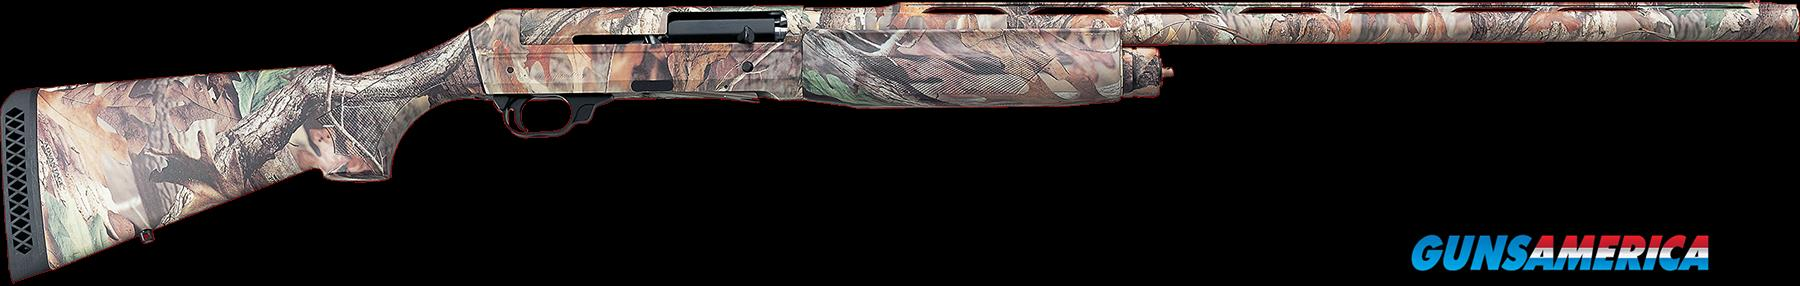 "Breda/Dickinson BRE55 Grizzly Semi-Automatic 12 Gauge 30"" 3.5"" Realtree Advantage Classic Synthetic  Guns > Shotguns > B Misc Shotguns"